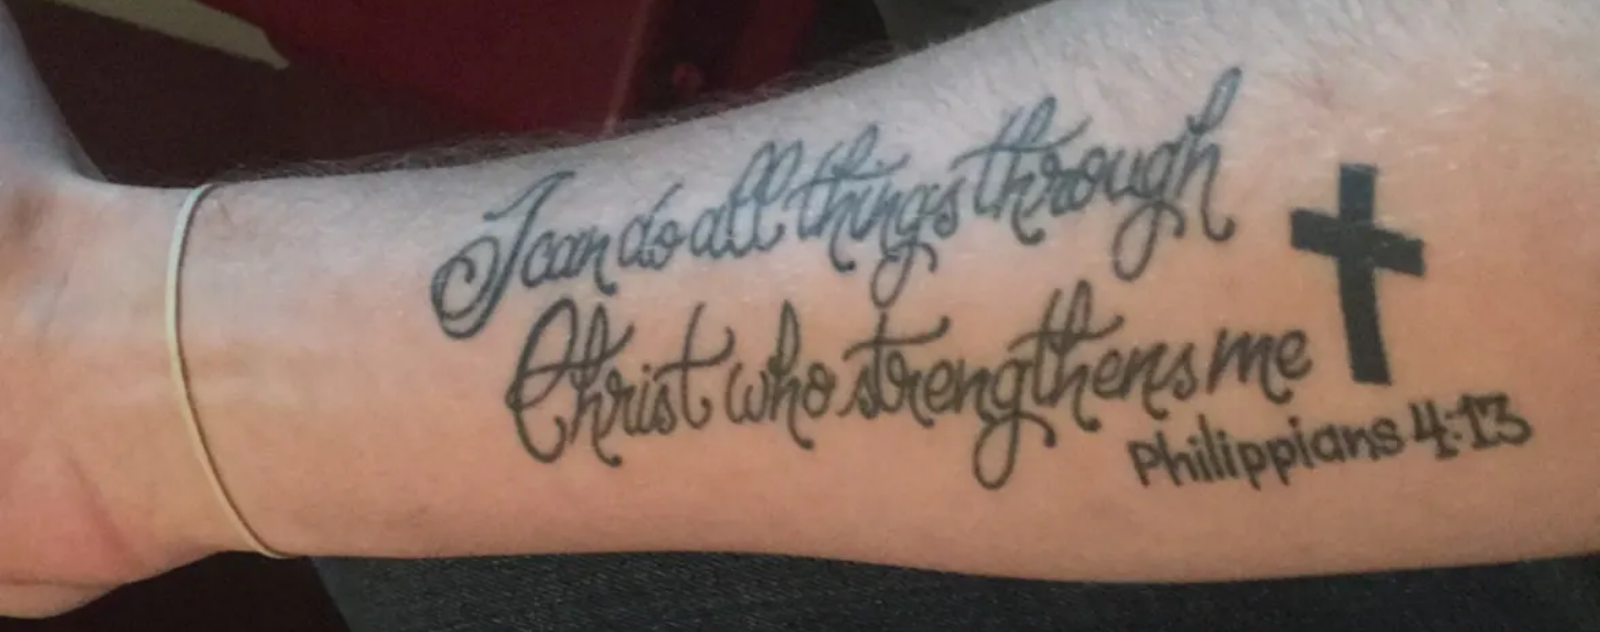 philippians-4-13-tattoo-with-cross-19